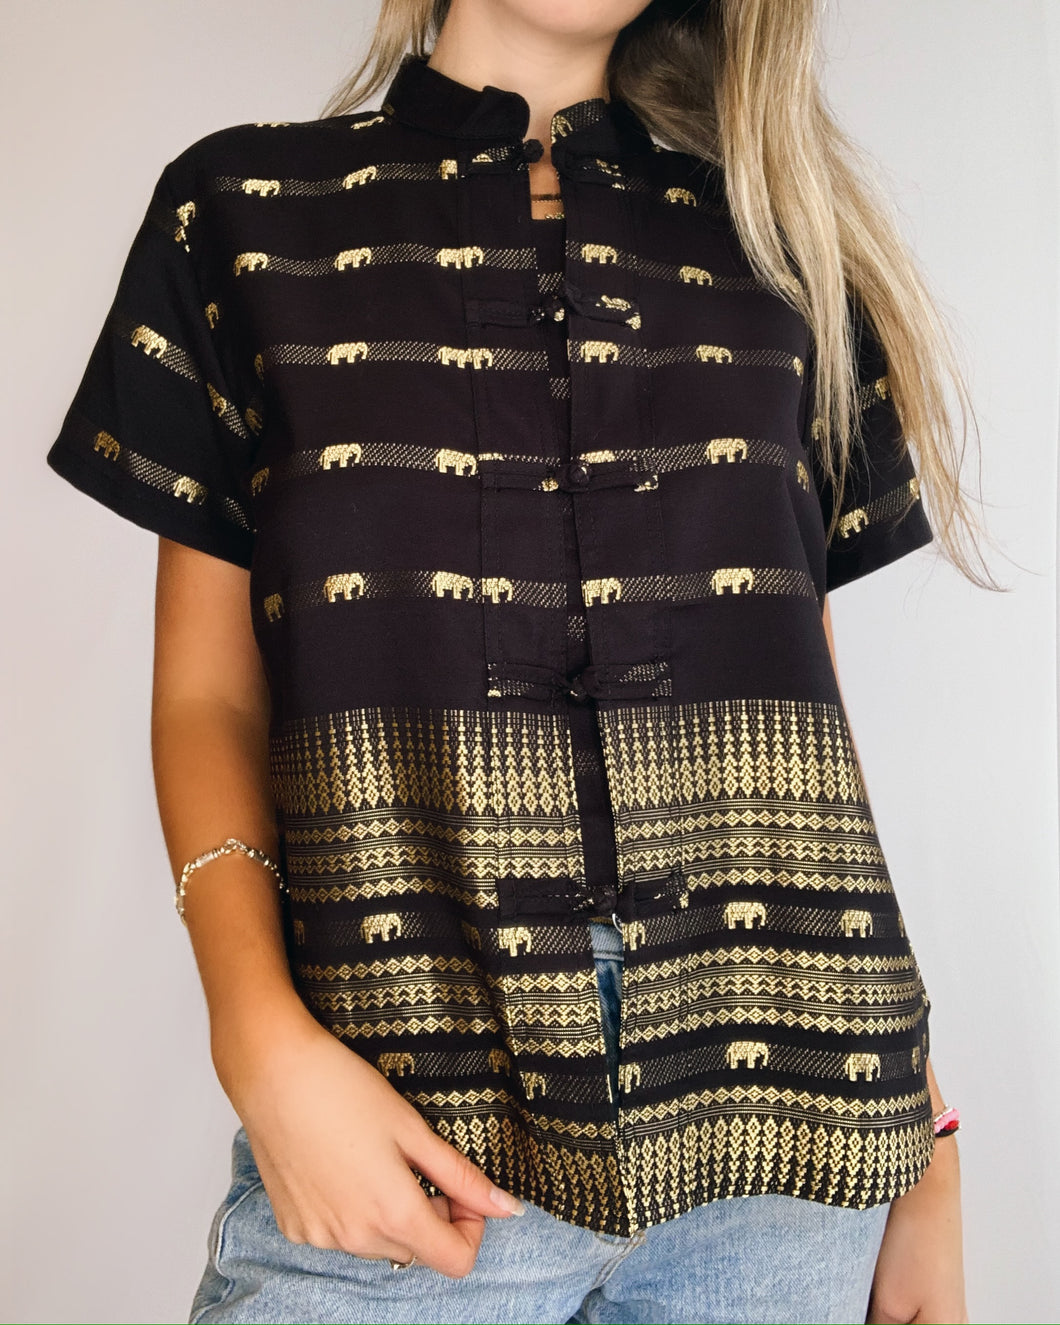 Elephant Print Black & Gold Button Up